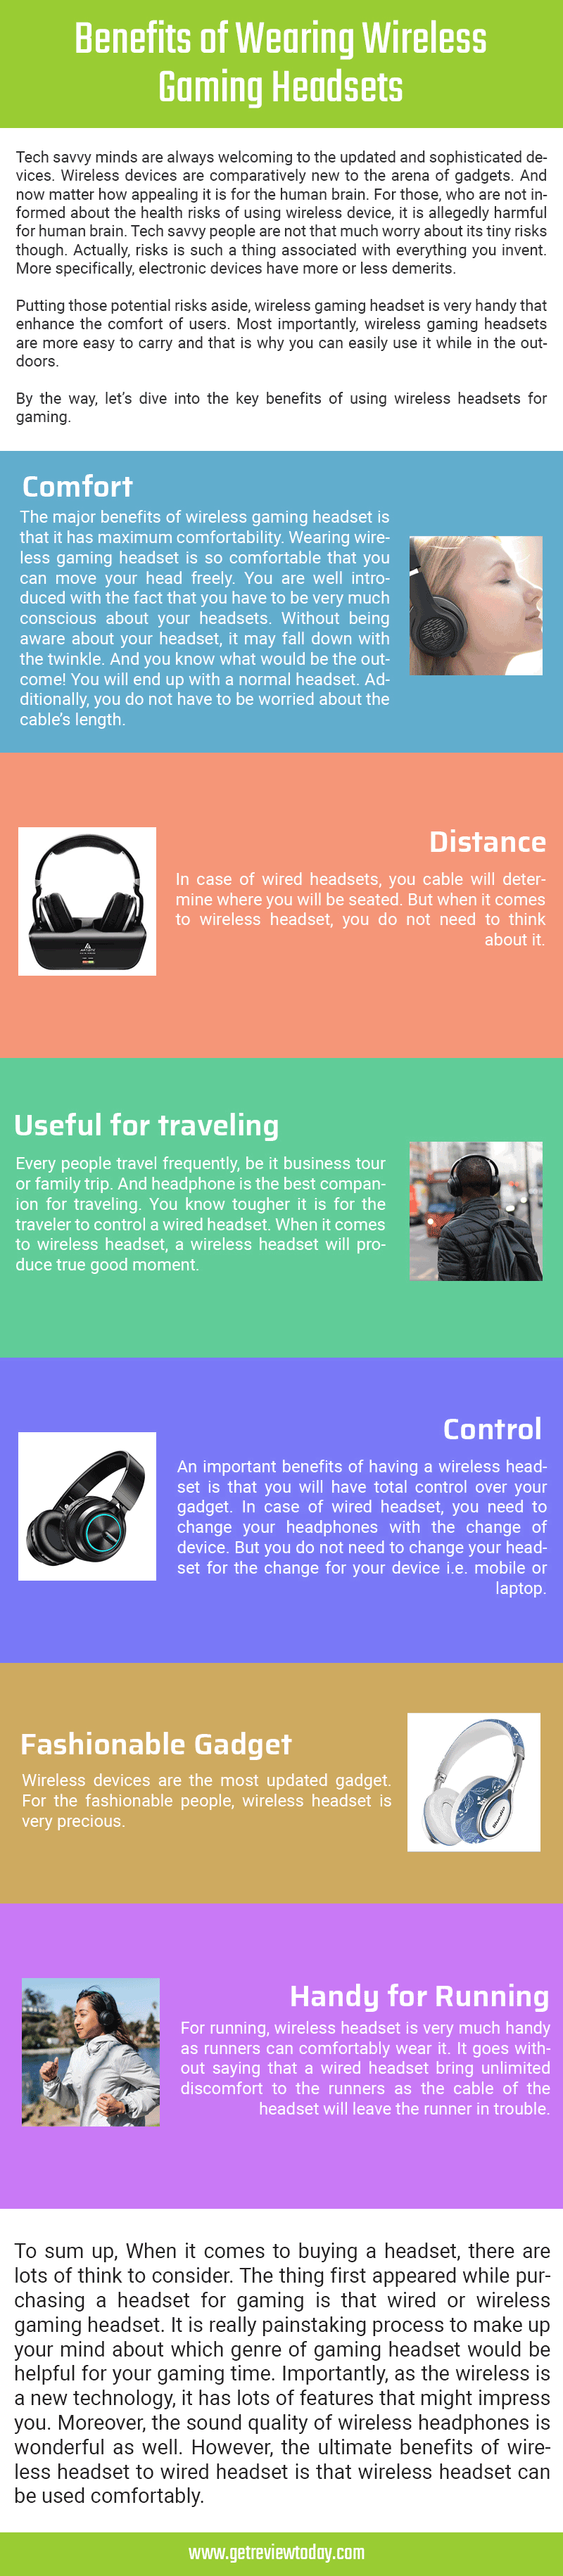 Infographic on Benefits of wearing wireless gaming headsets